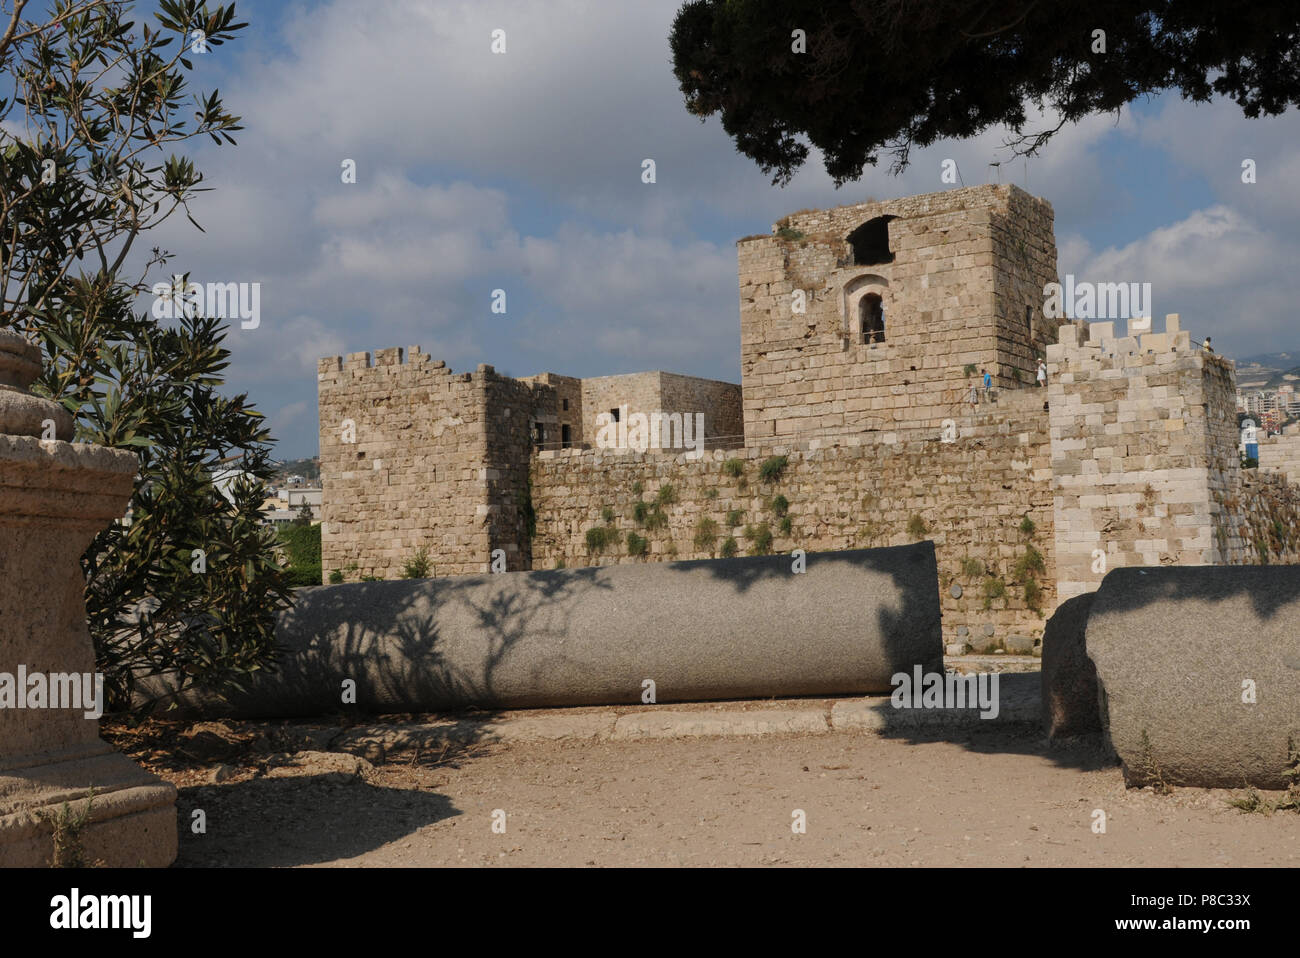 Lebaon: The ancient castle of Byblos City belongs to the Uneco World Heritages - Stock Image